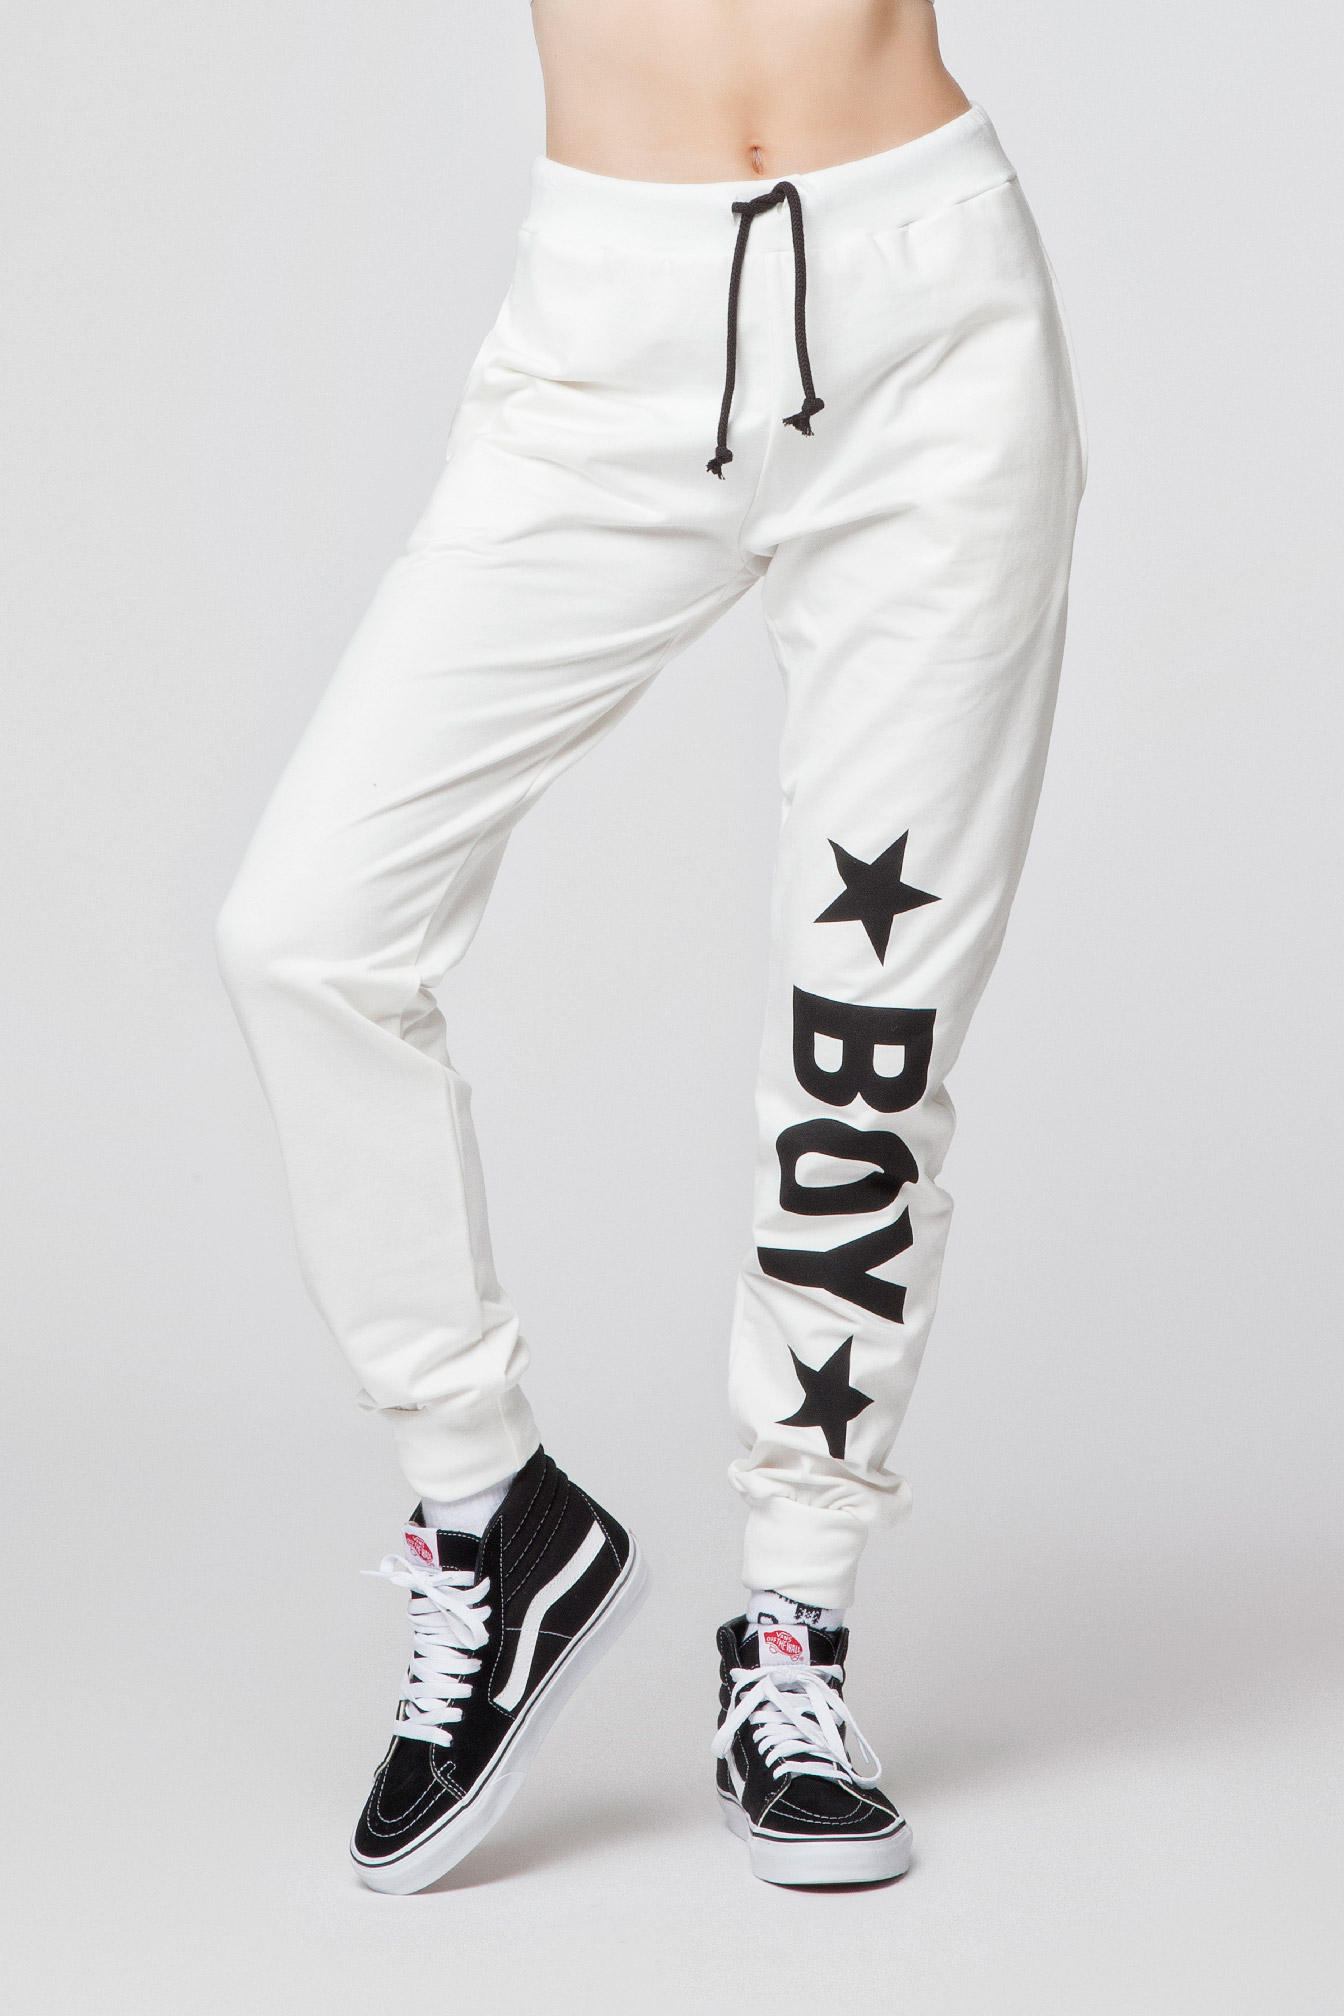 PANTALONE - BLD2040 - BOY LONDON